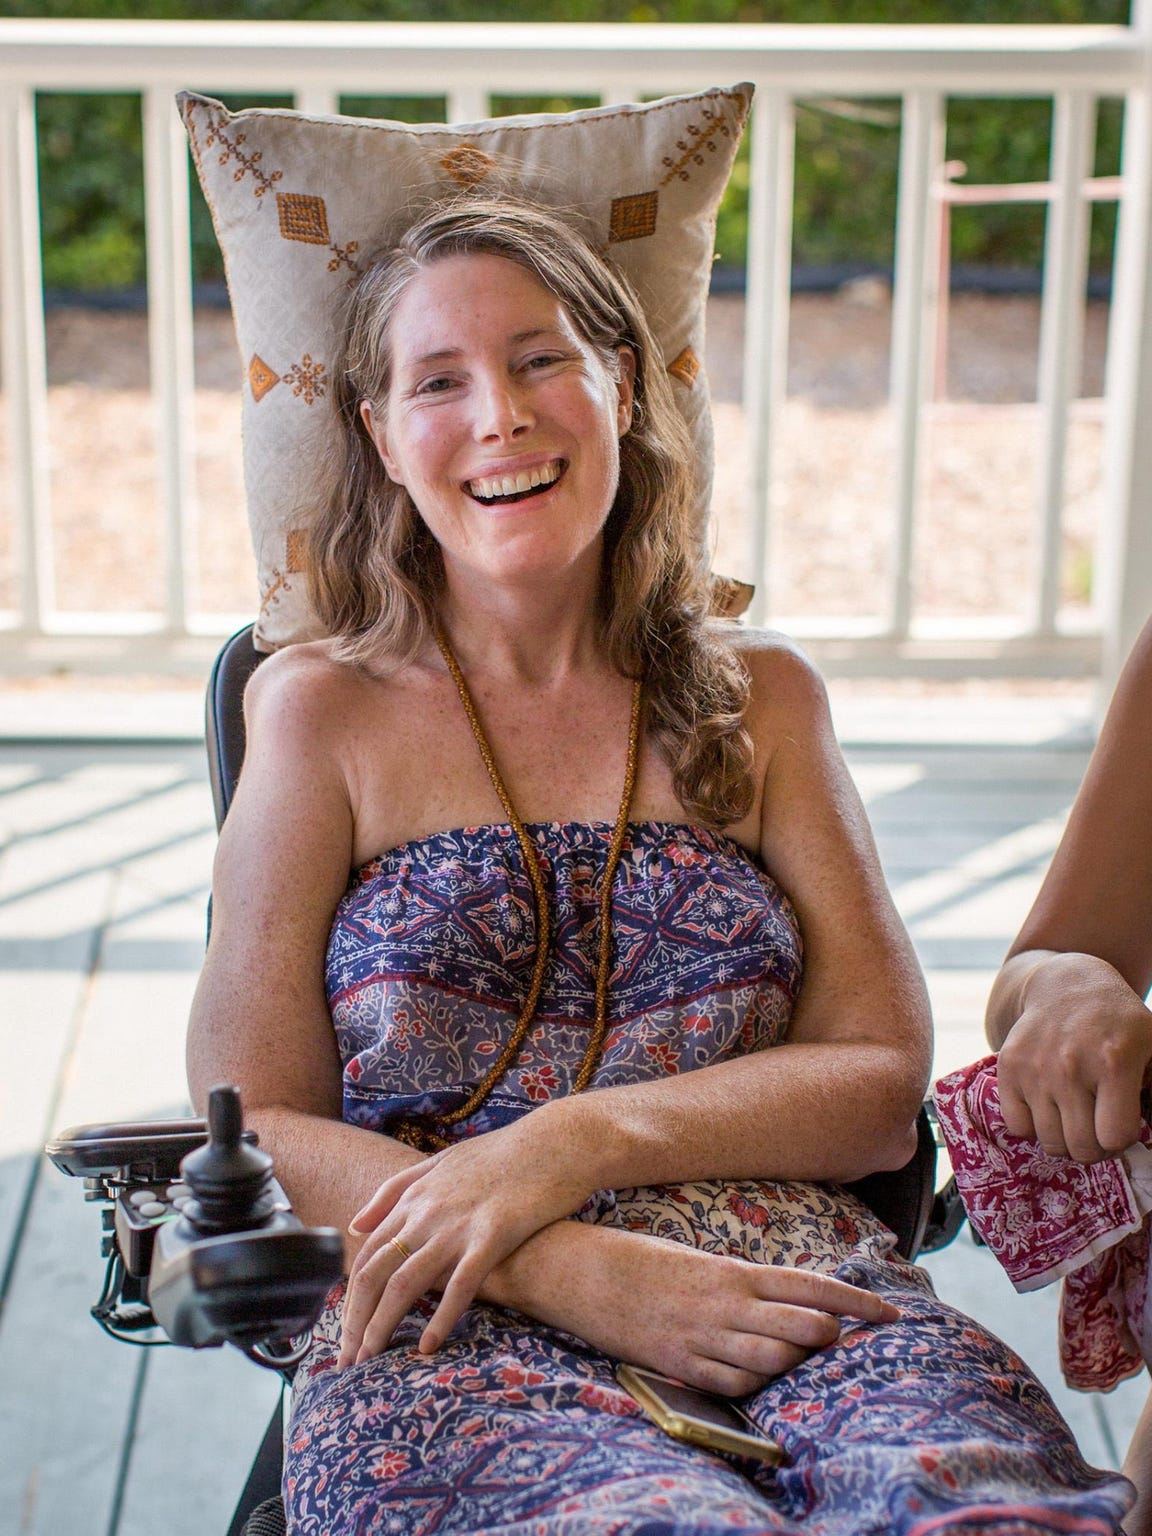 Betsy Davis, 41, ended her life on July 24 after a three-year struggle with ALS.